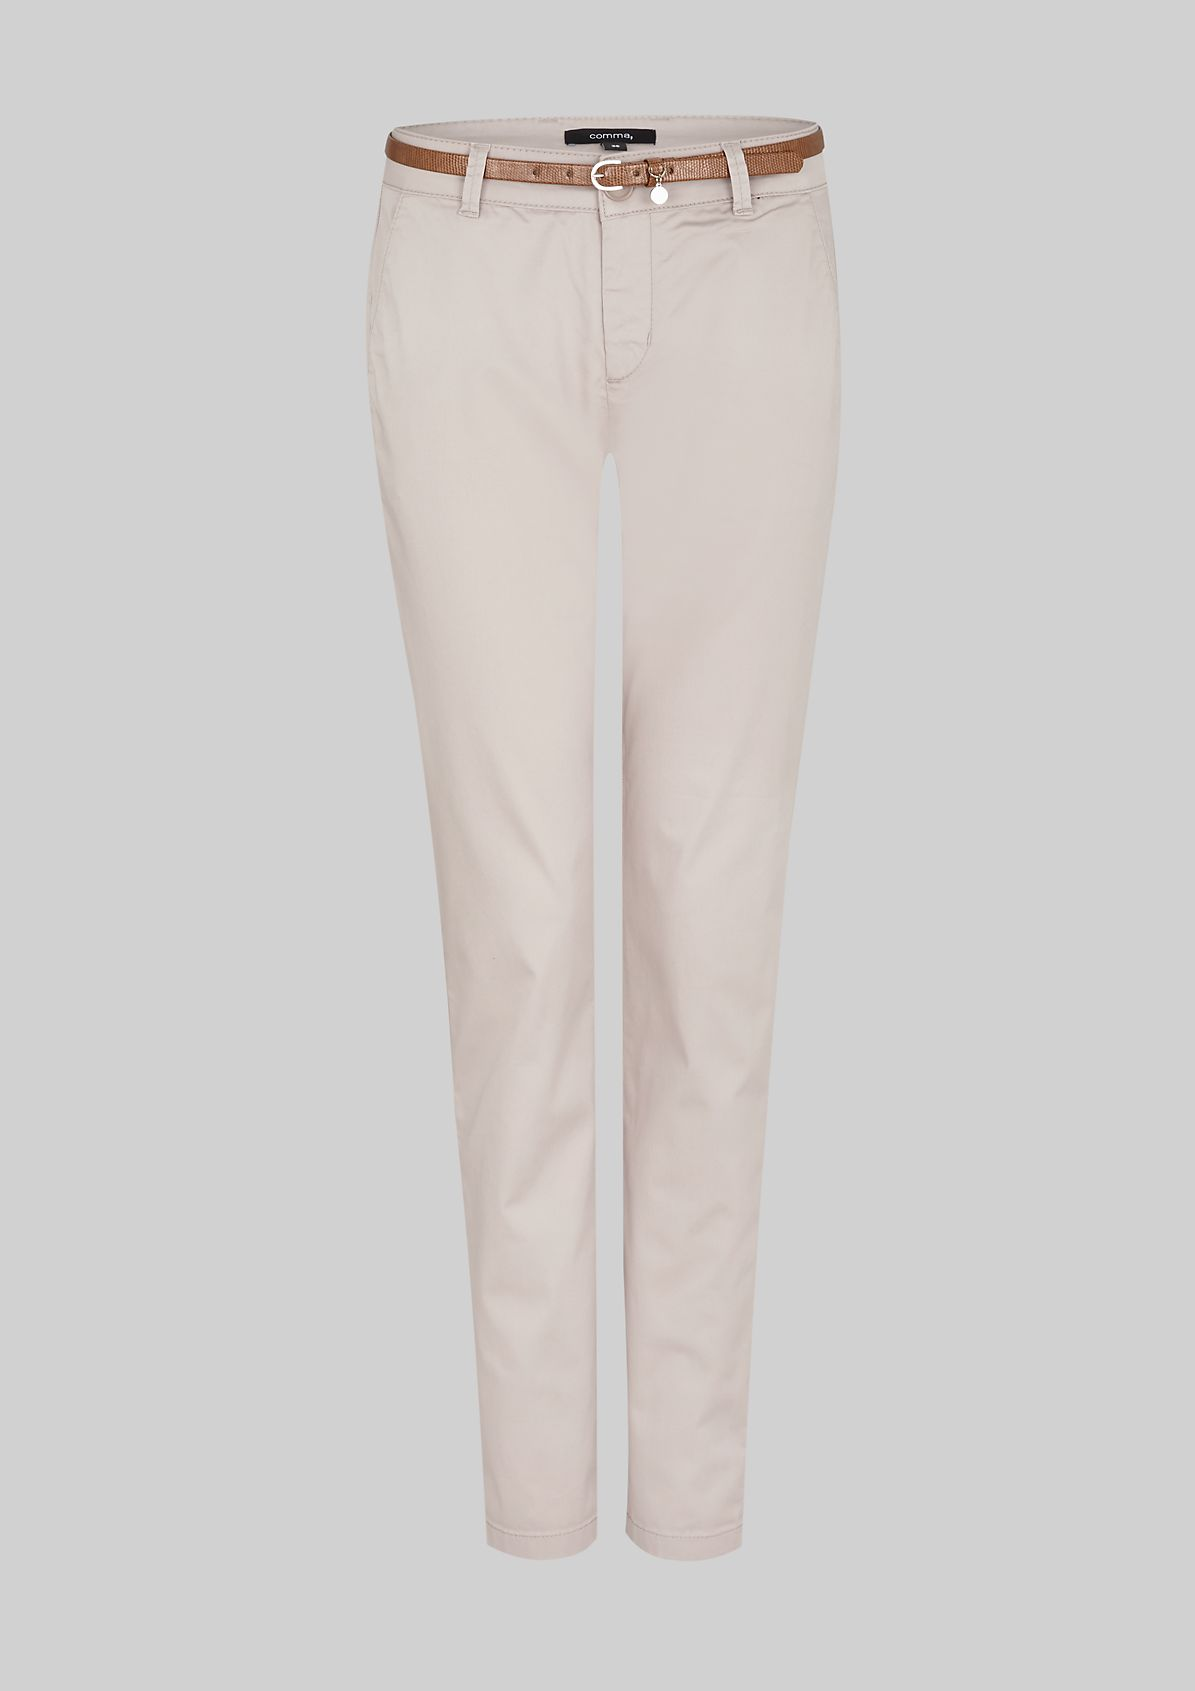 Classic chinos with fabulous details from s.Oliver